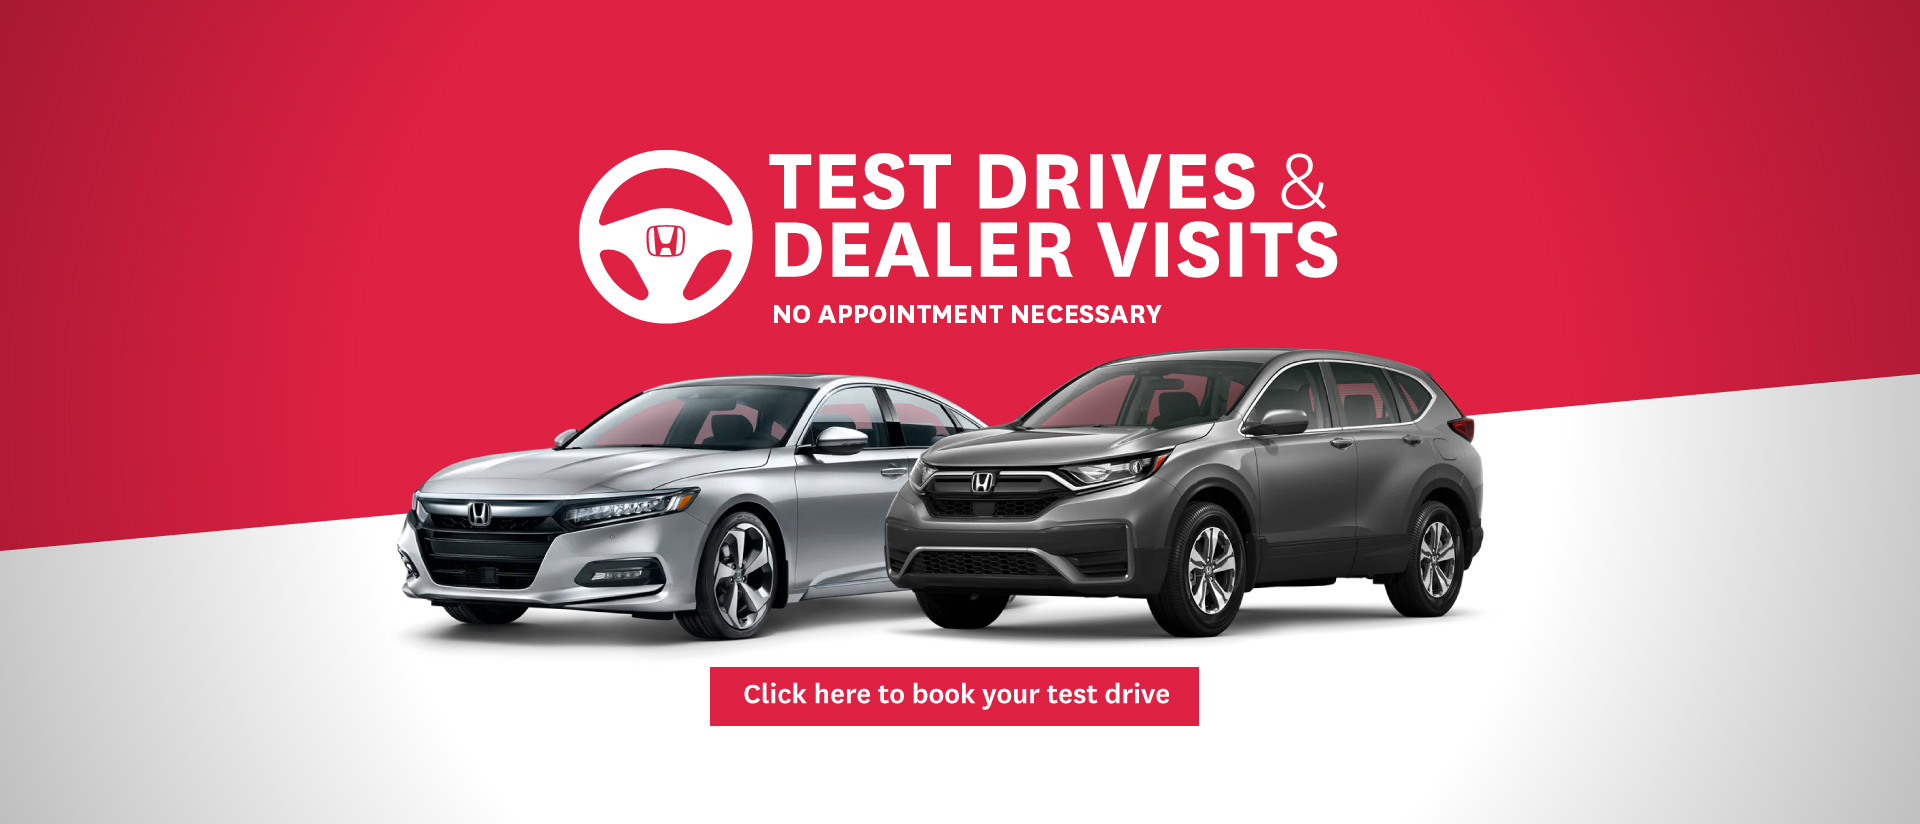 West City Honda Test Drive Slider Update